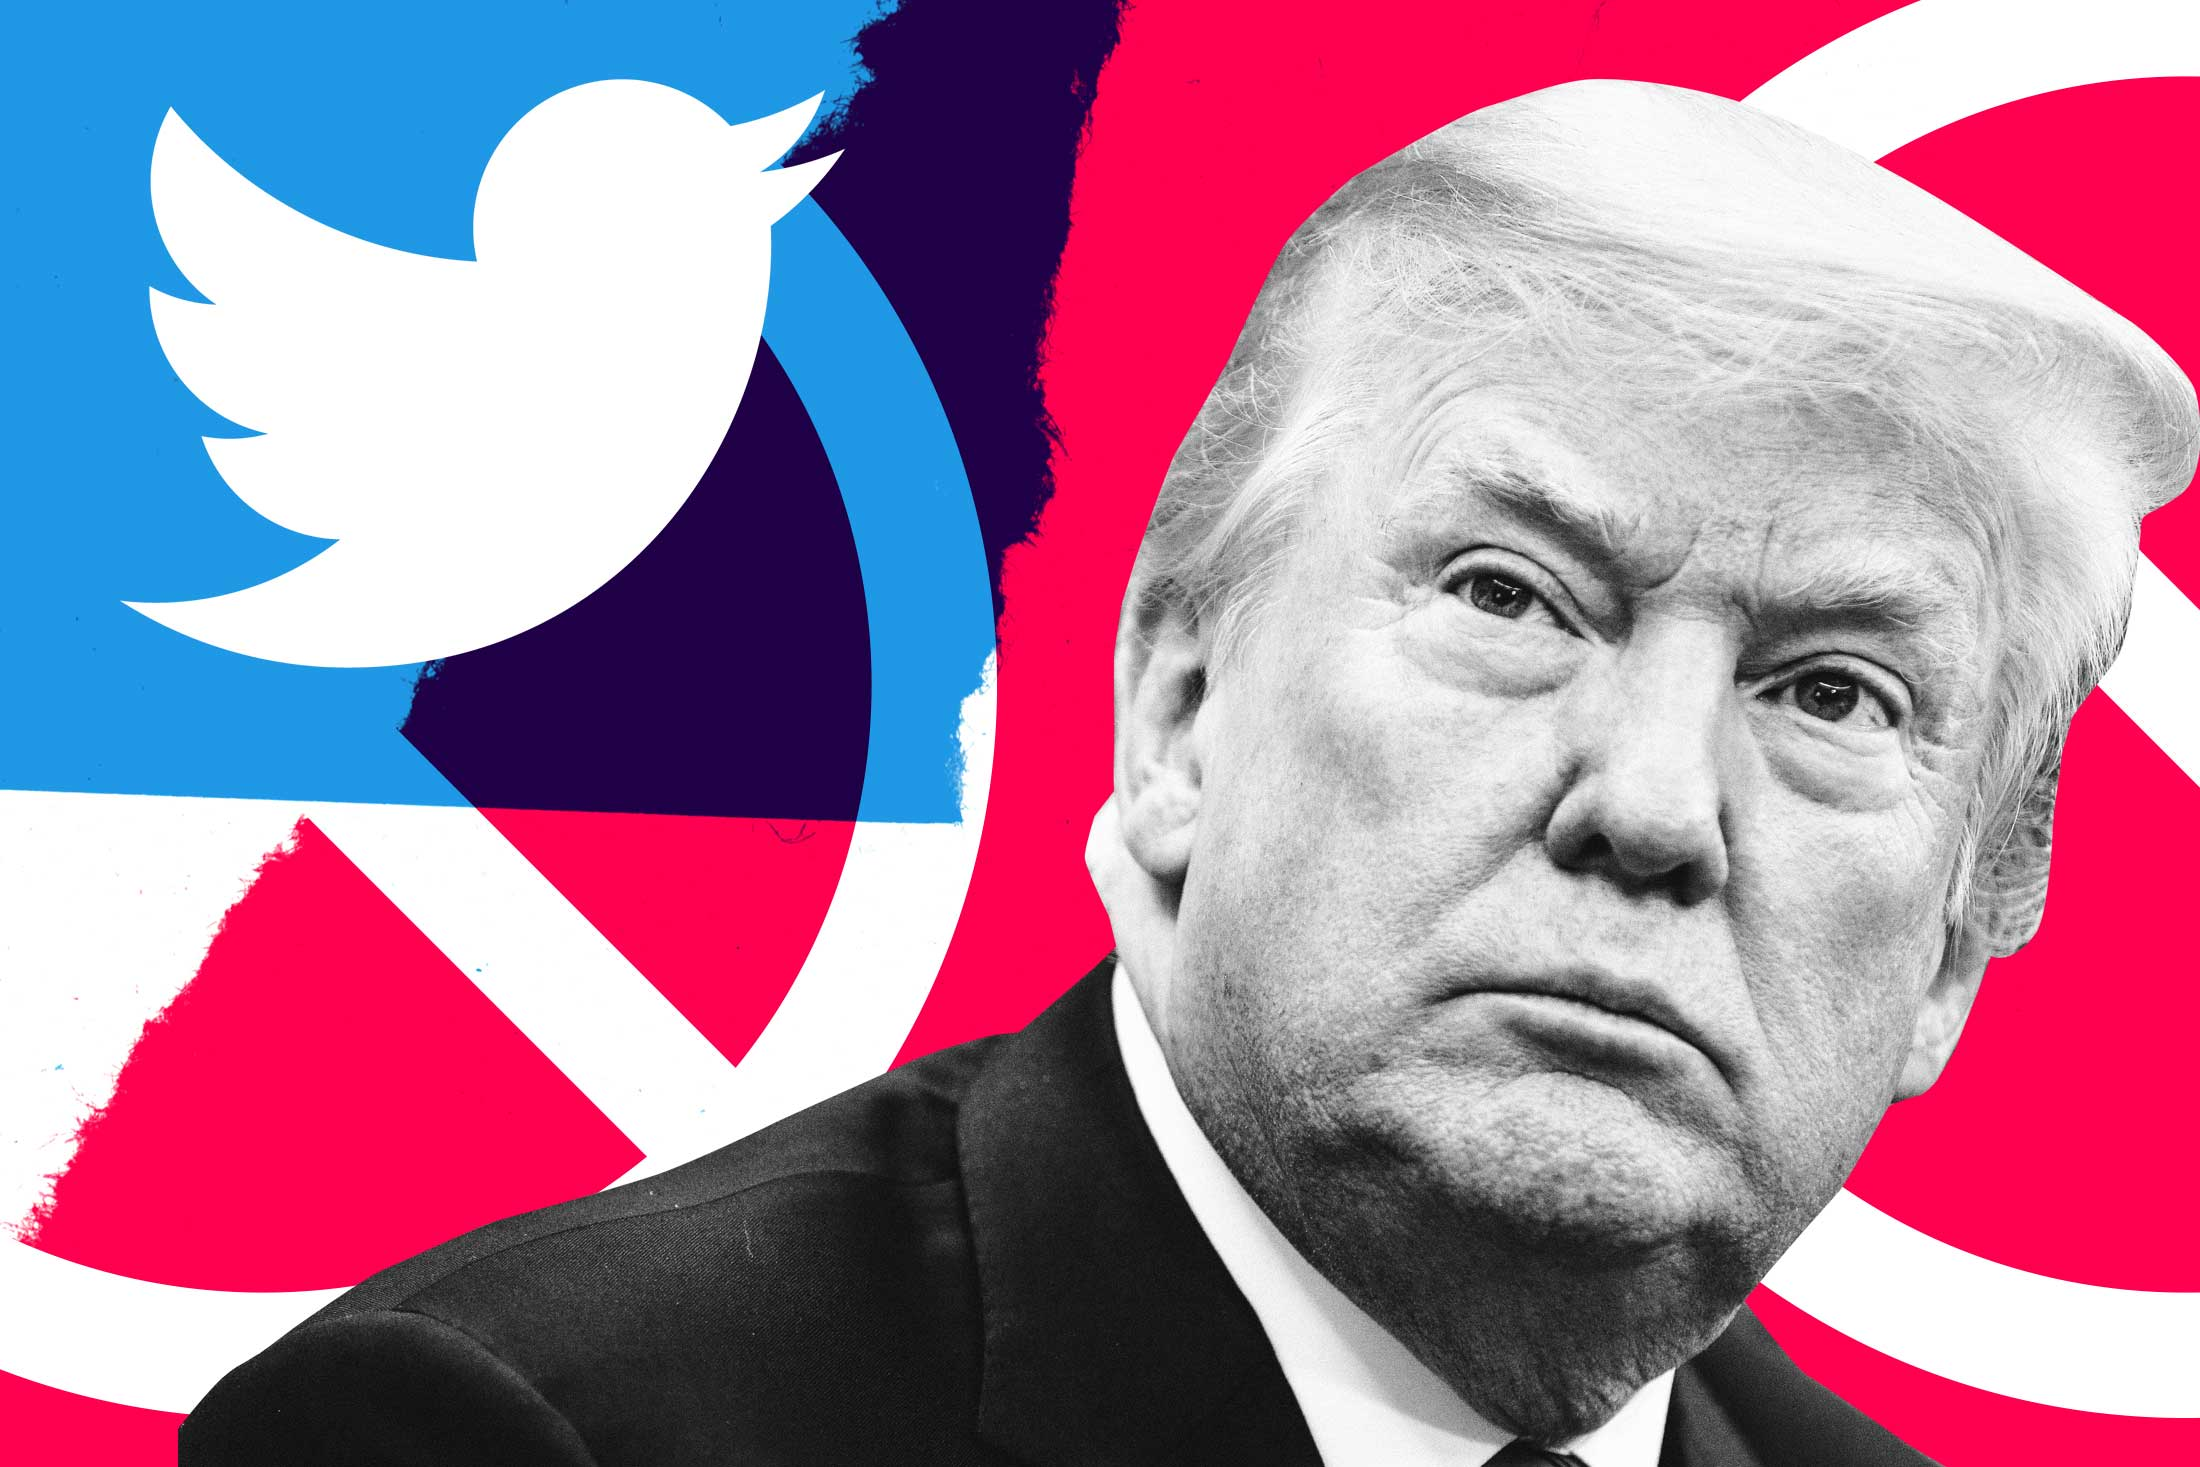 Donald Trump, no signs, Twitter logo.